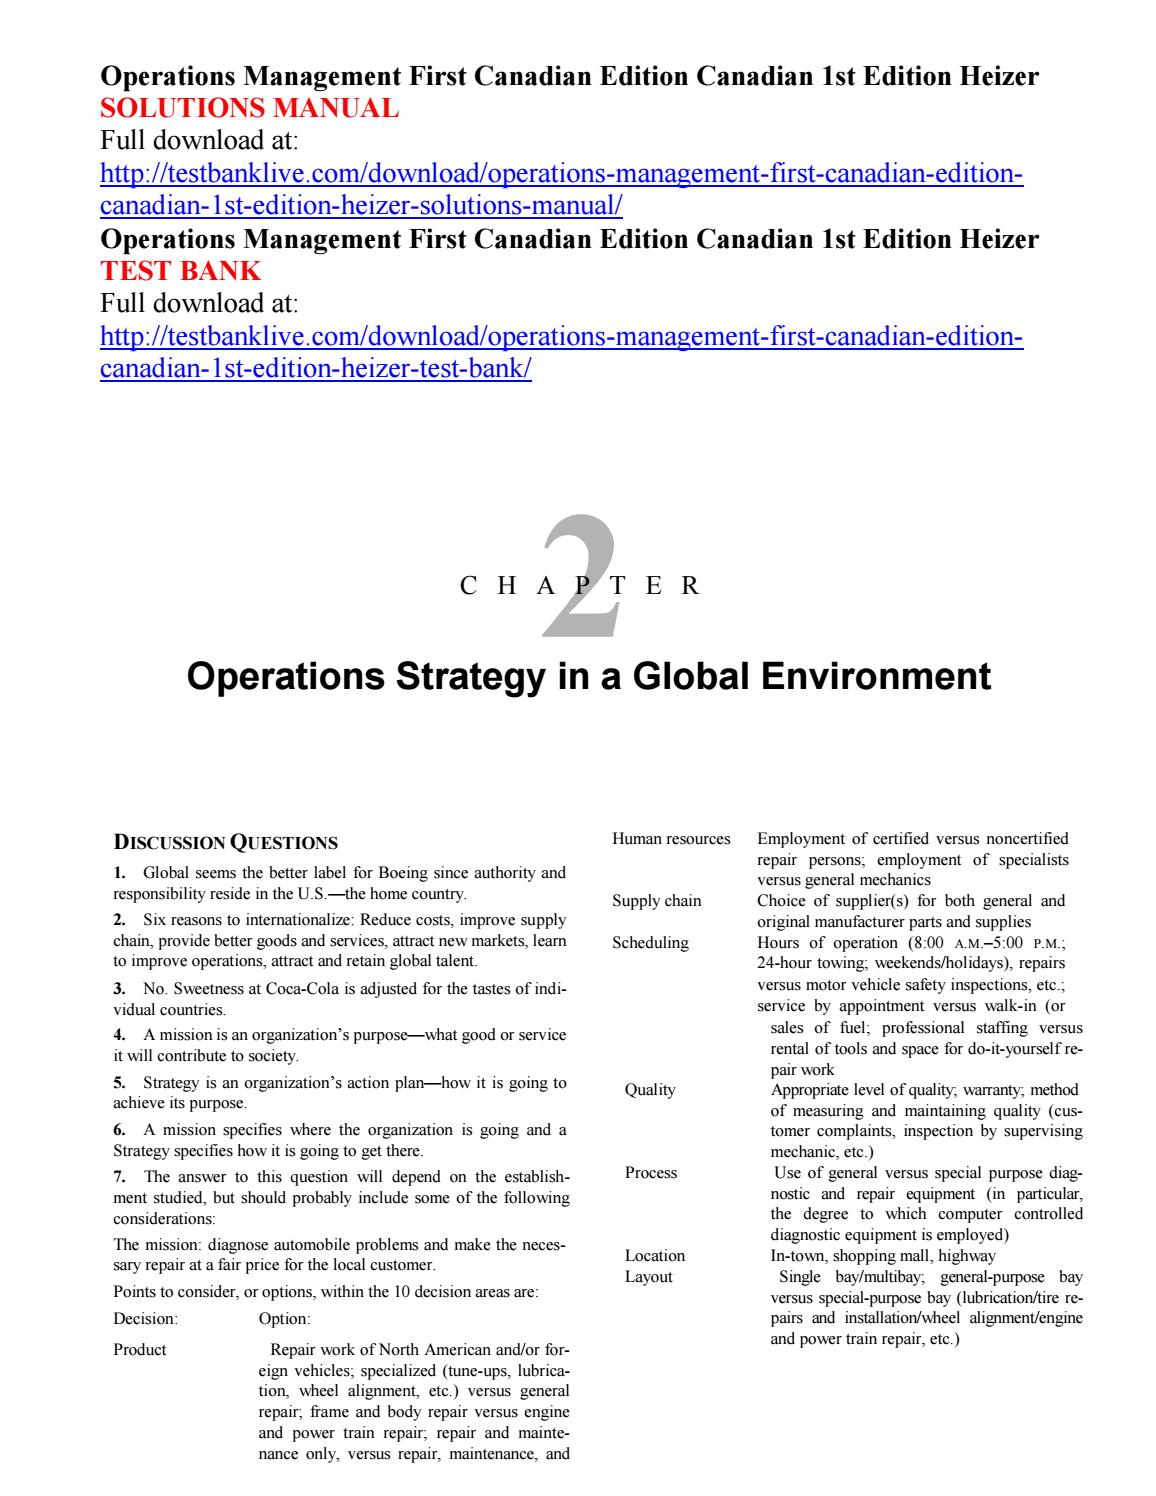 Operations management first canadian edition canadian 1st edition heizer  solutions manual by Krajewski000 - issuu